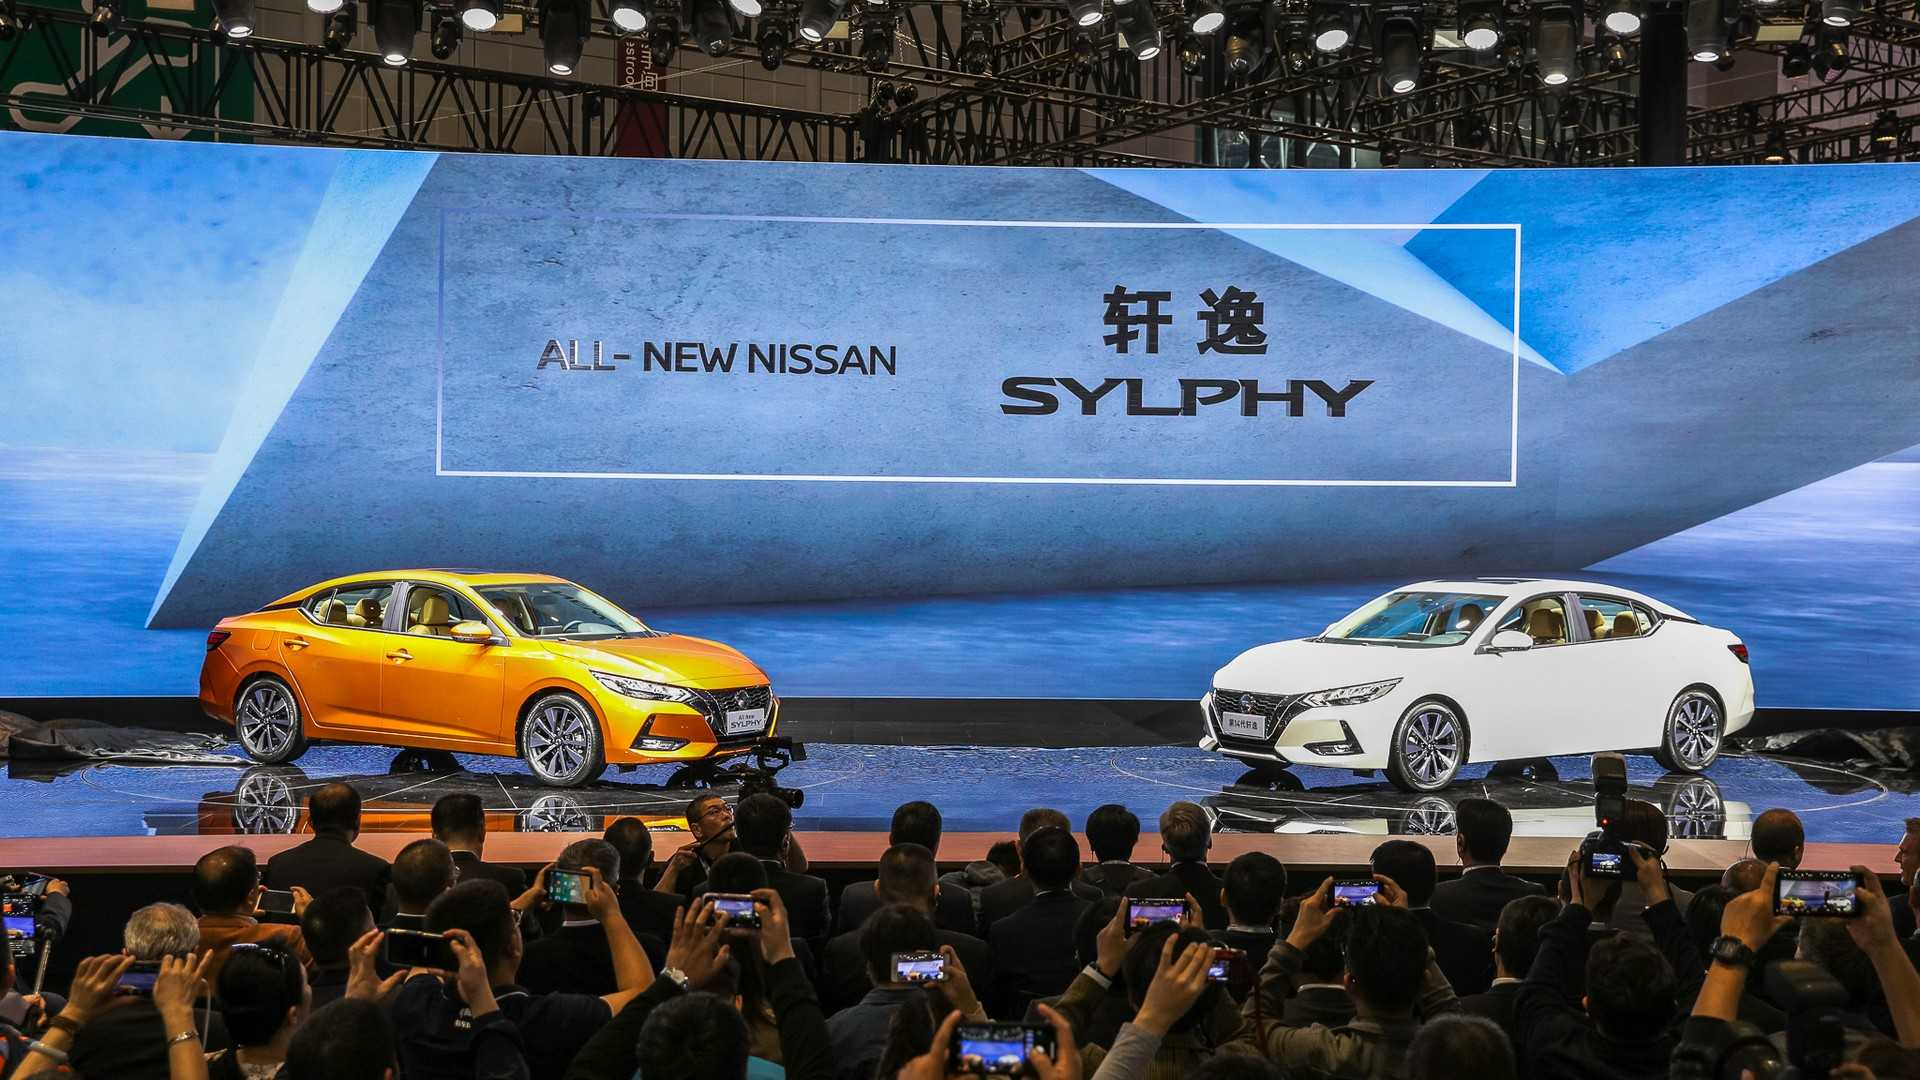 Nissan-Sylphy-2019-9